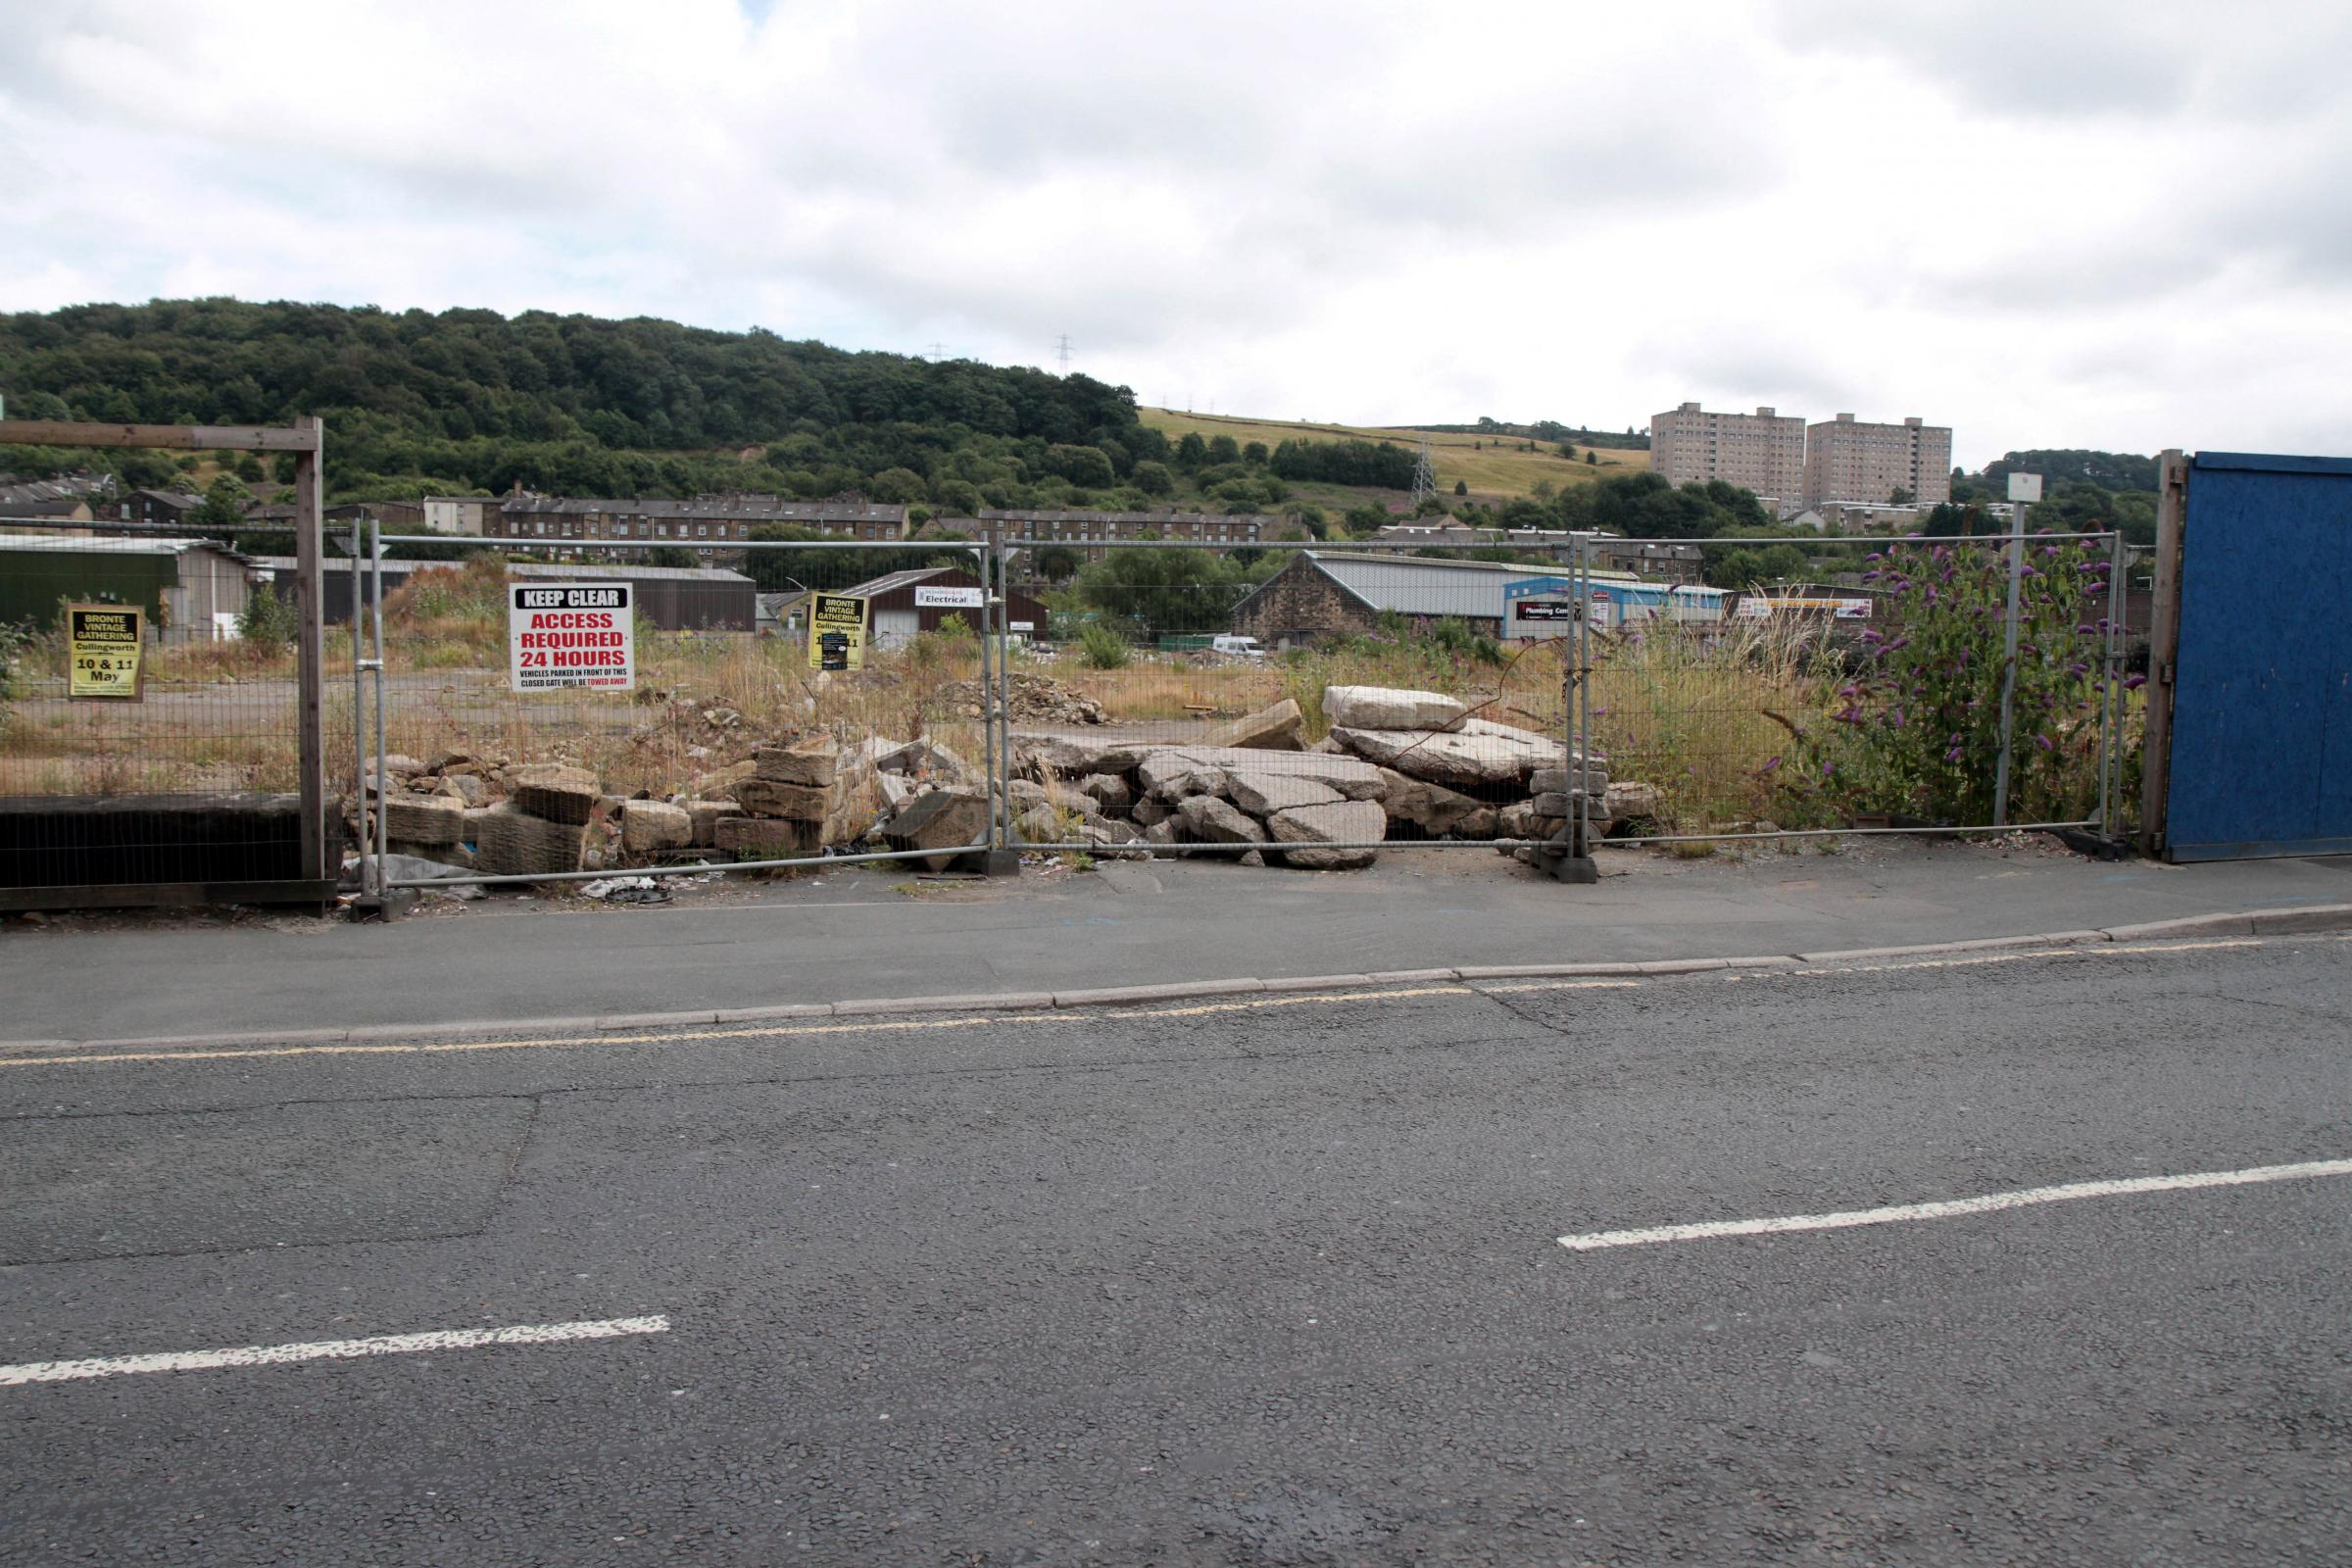 The derelict site in East Parade, Keighley